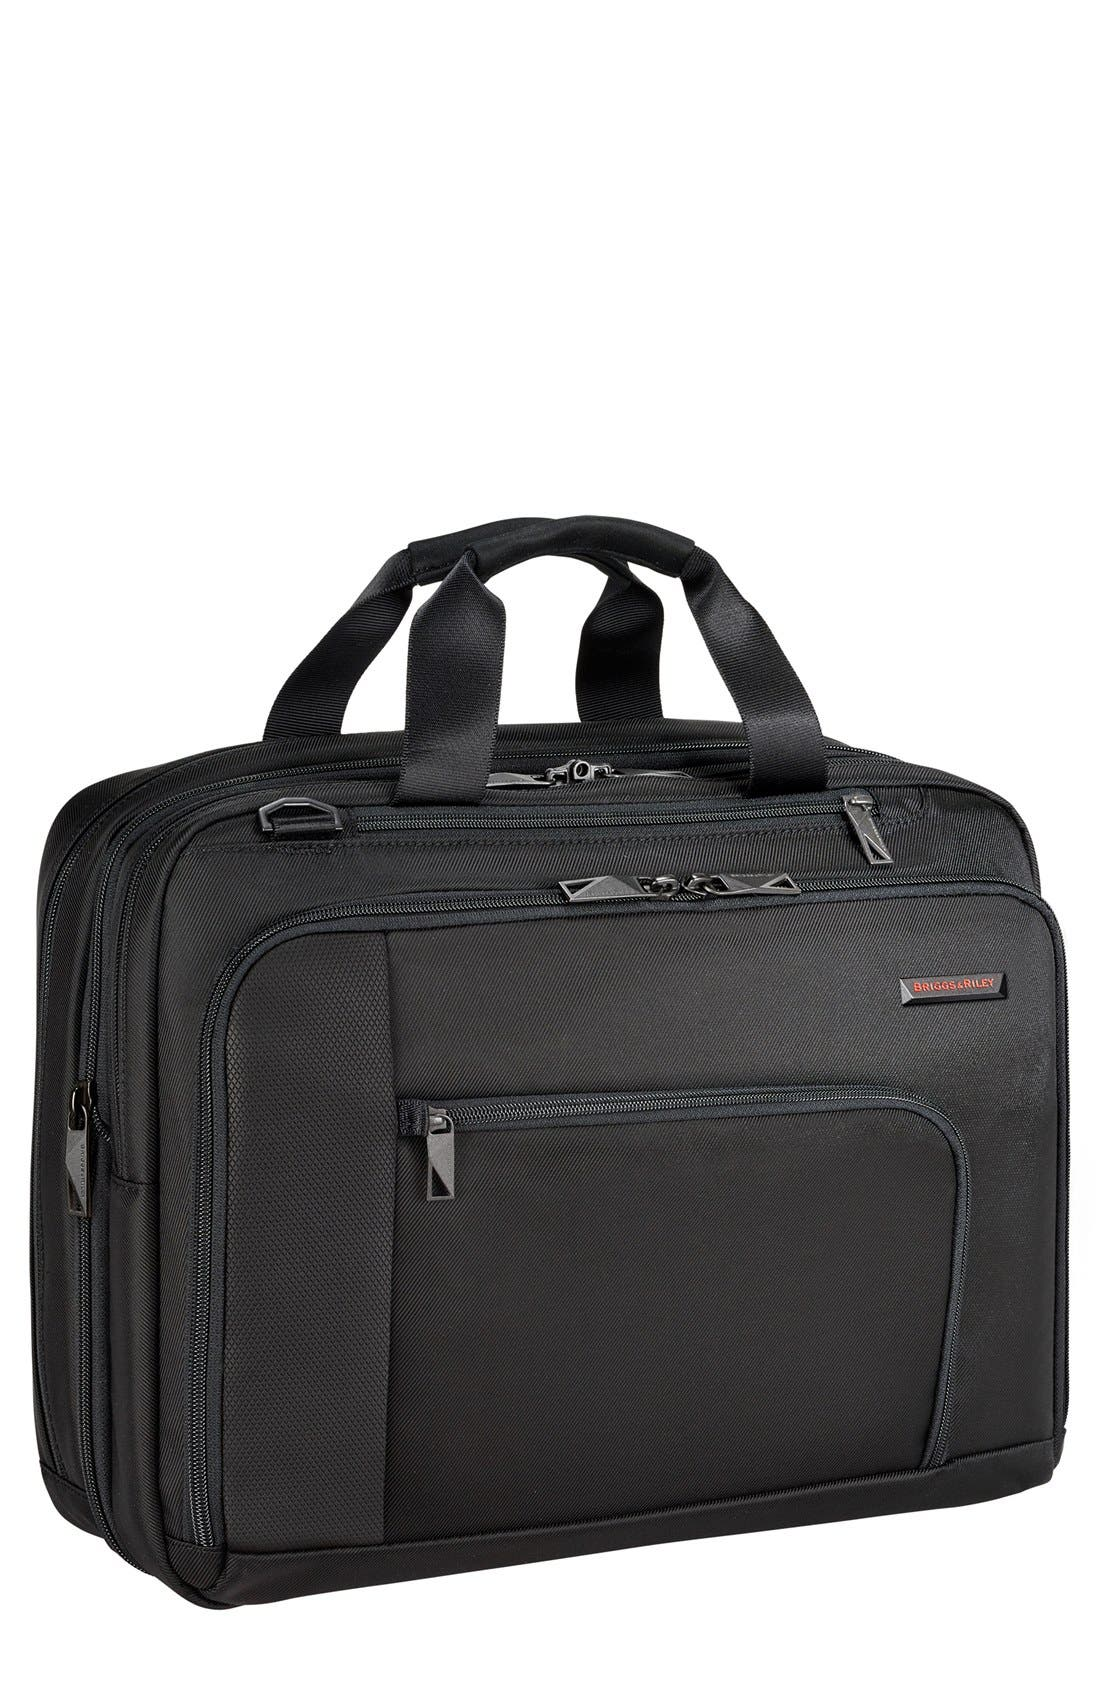 Briggs & Riley 'Verb - Adapt' Expandable Briefcase